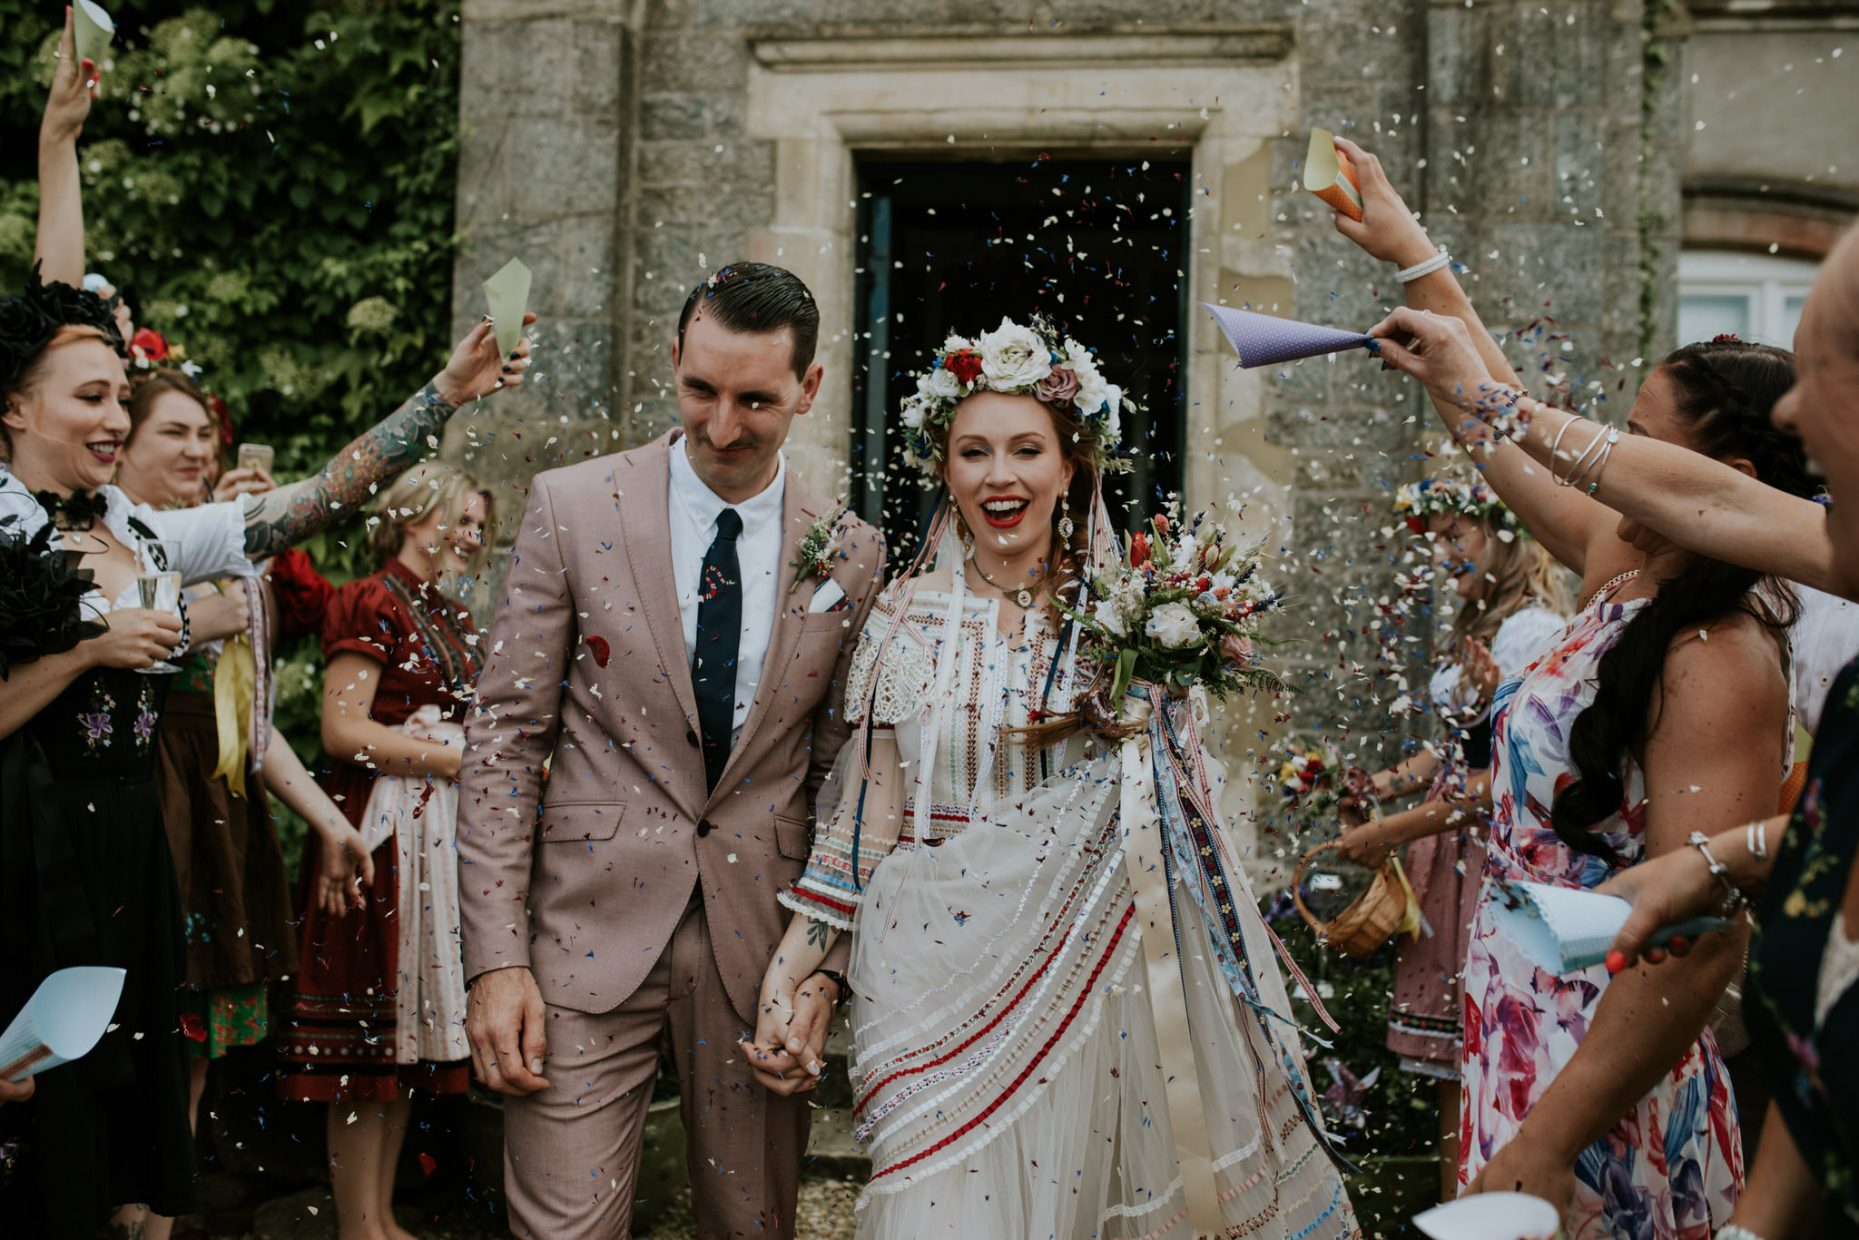 bride and groom have confetti thrown in their faces with big smiles on their faces and wildflowers in her hair